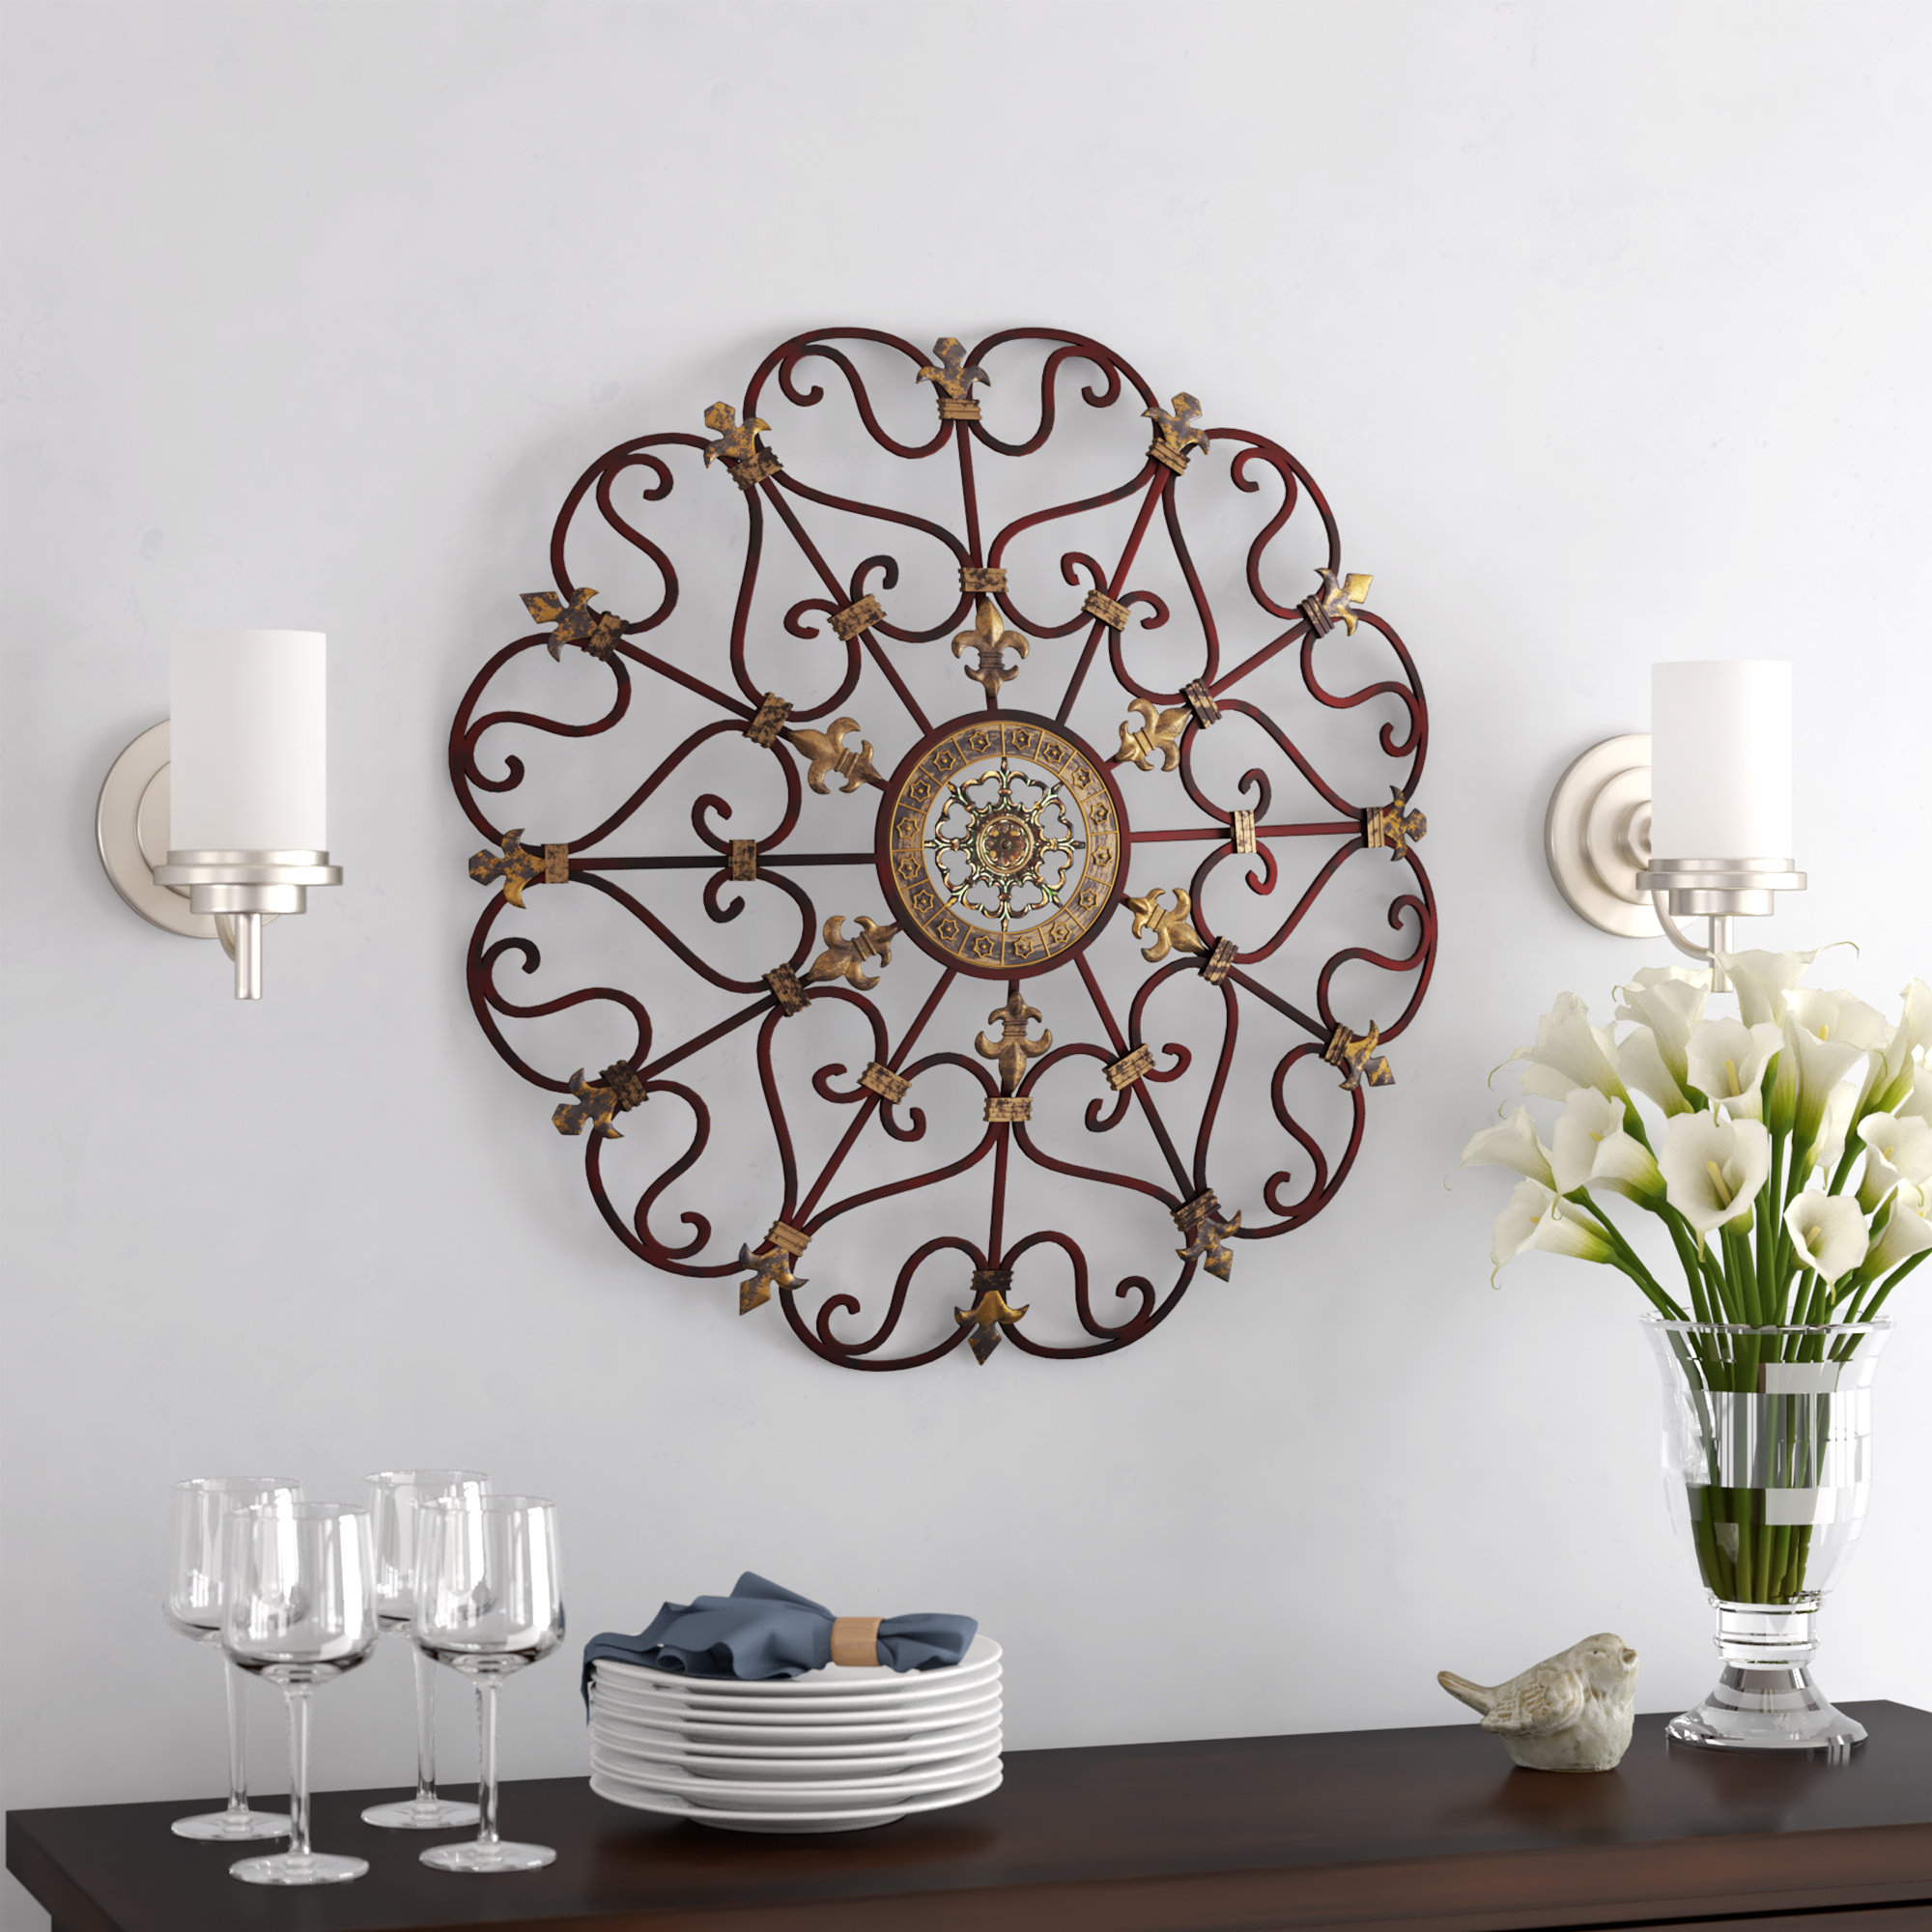 Wayfair Regarding Well Known 4 Piece Wall Decor Sets By Charlton Home (Gallery 12 of 20)